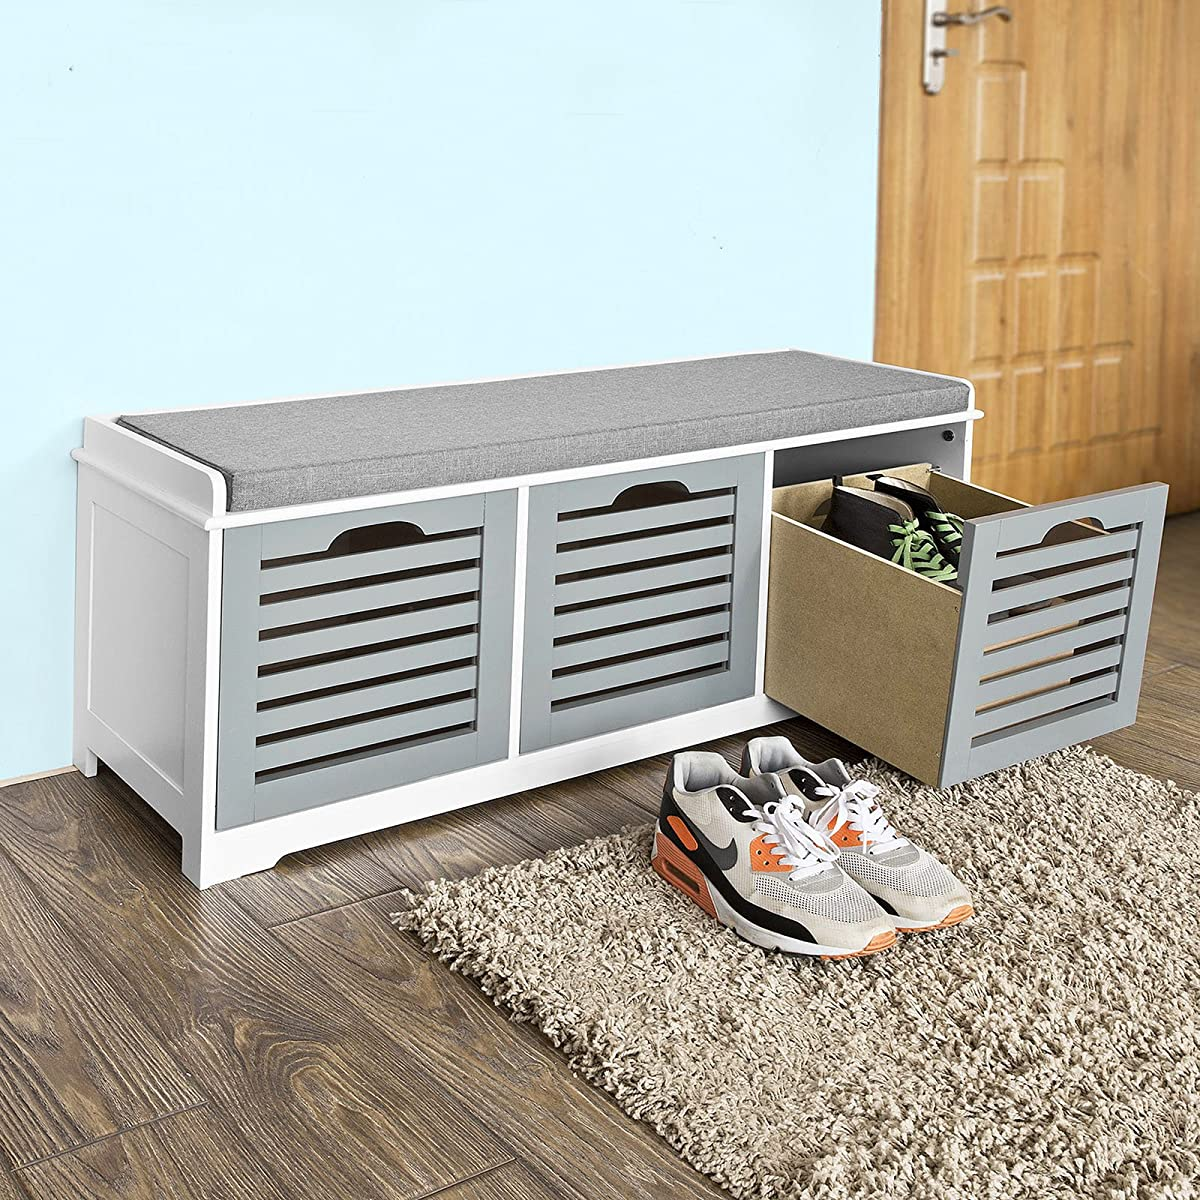 Sobuy storage bench with storage compartment shoe bench shoe cabinet fsr23 hg Shoe cabinet bench